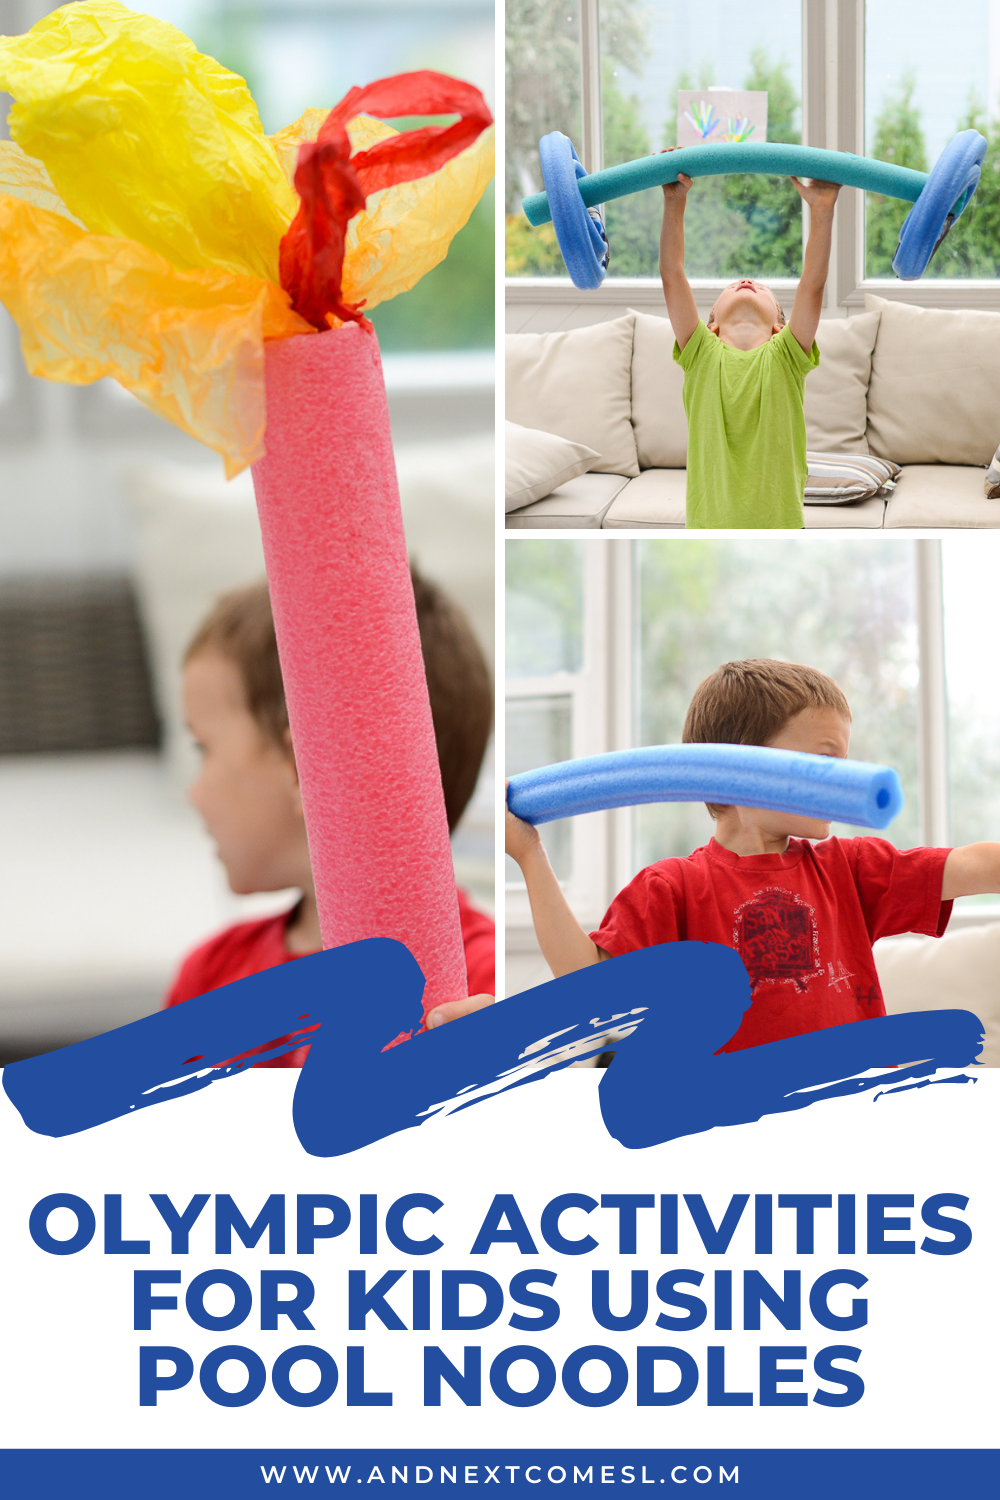 Olympic activities for kids using pool noodles